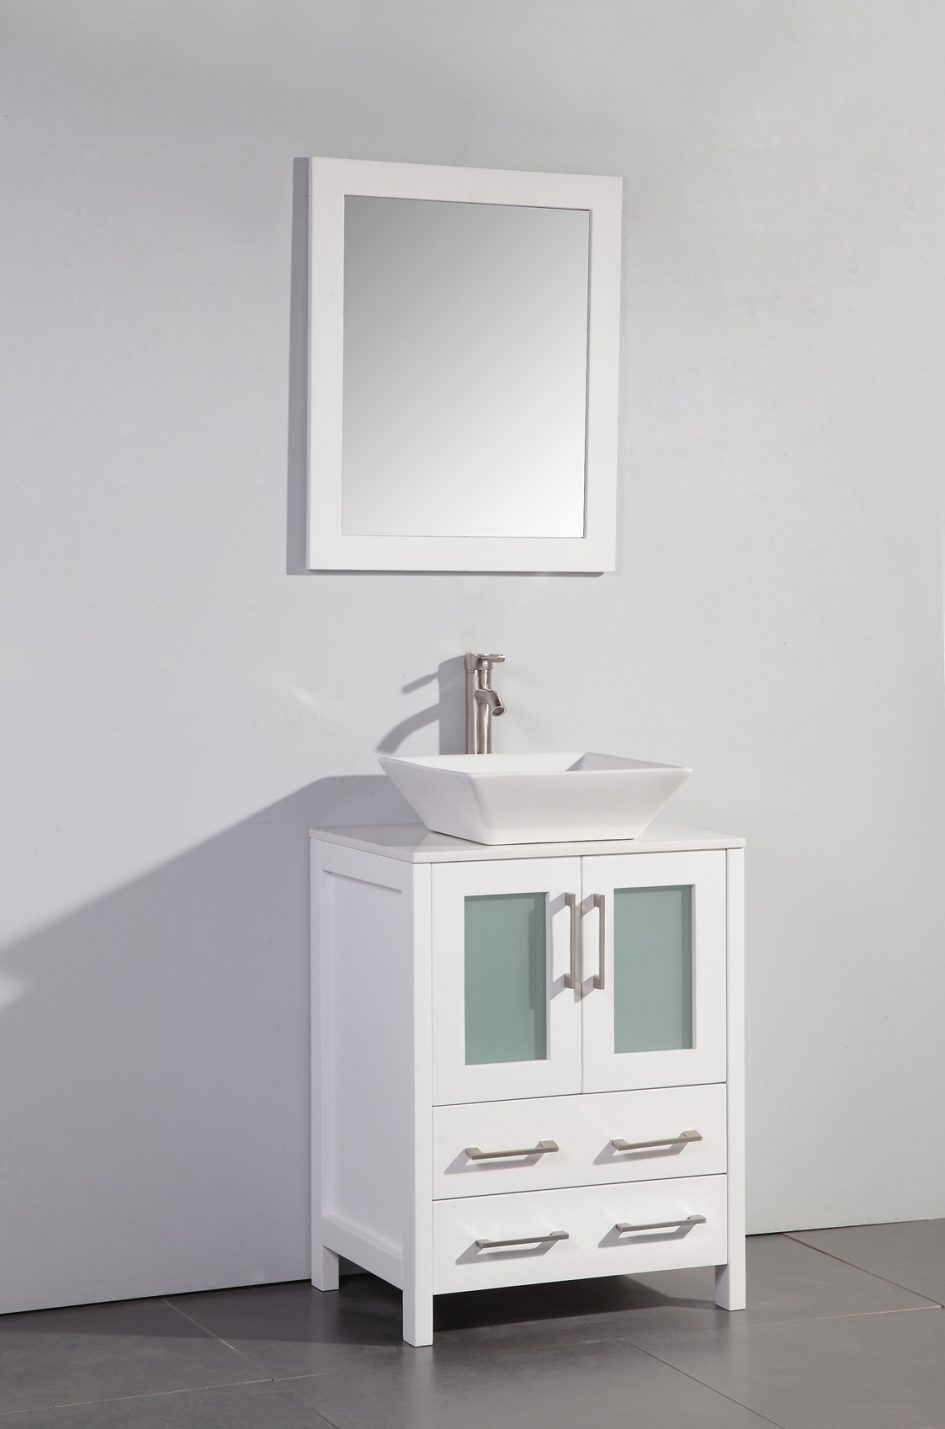 Permalink to 24 Inch Bathroom Vanity With Sink And Drawers